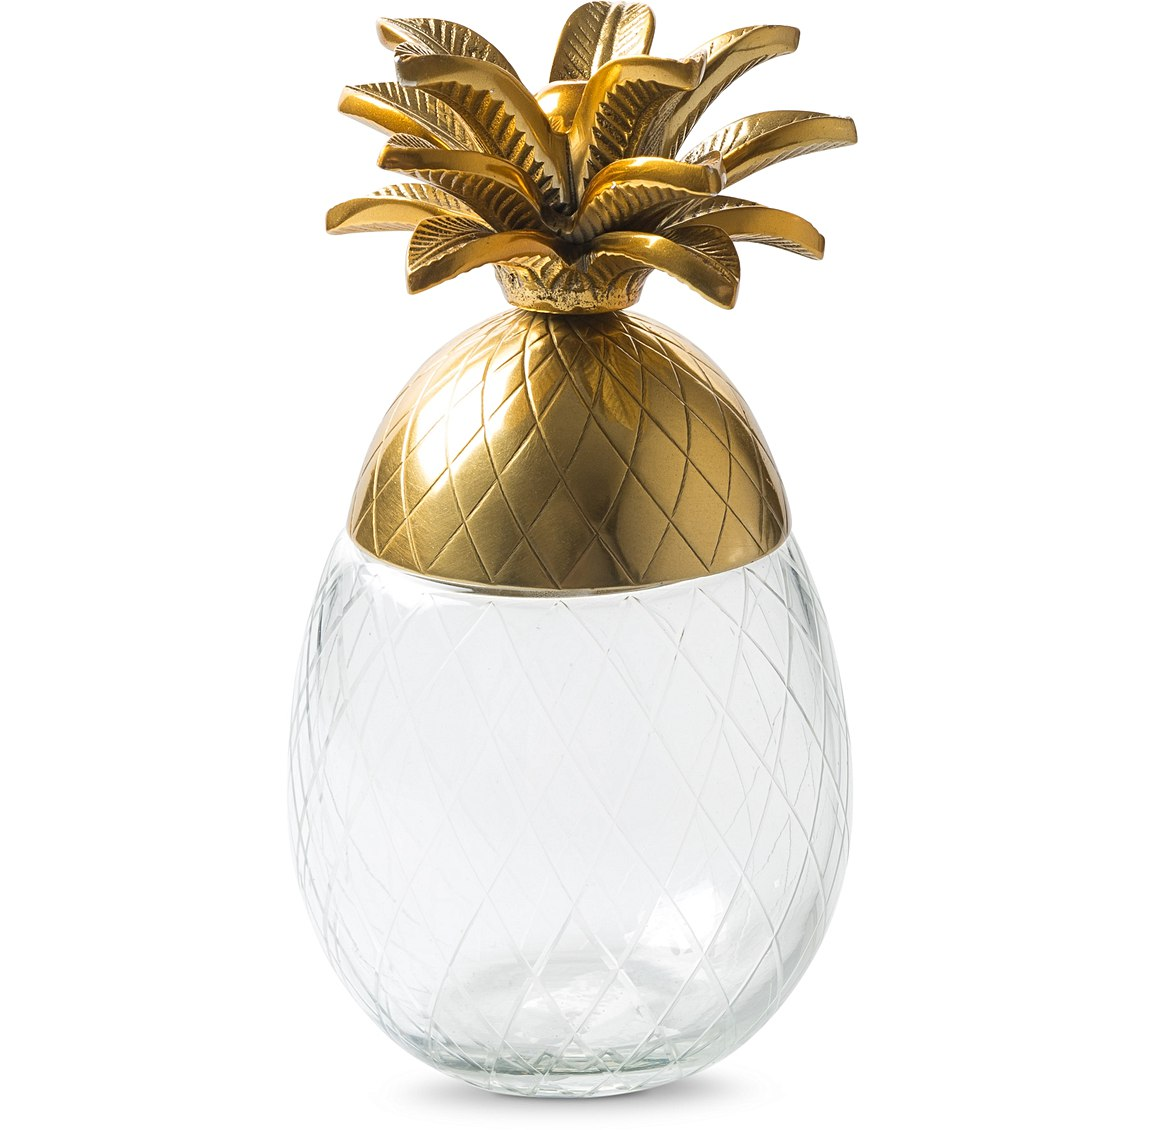 Store your trinkets in style in this lovely pineapple design glass storage box